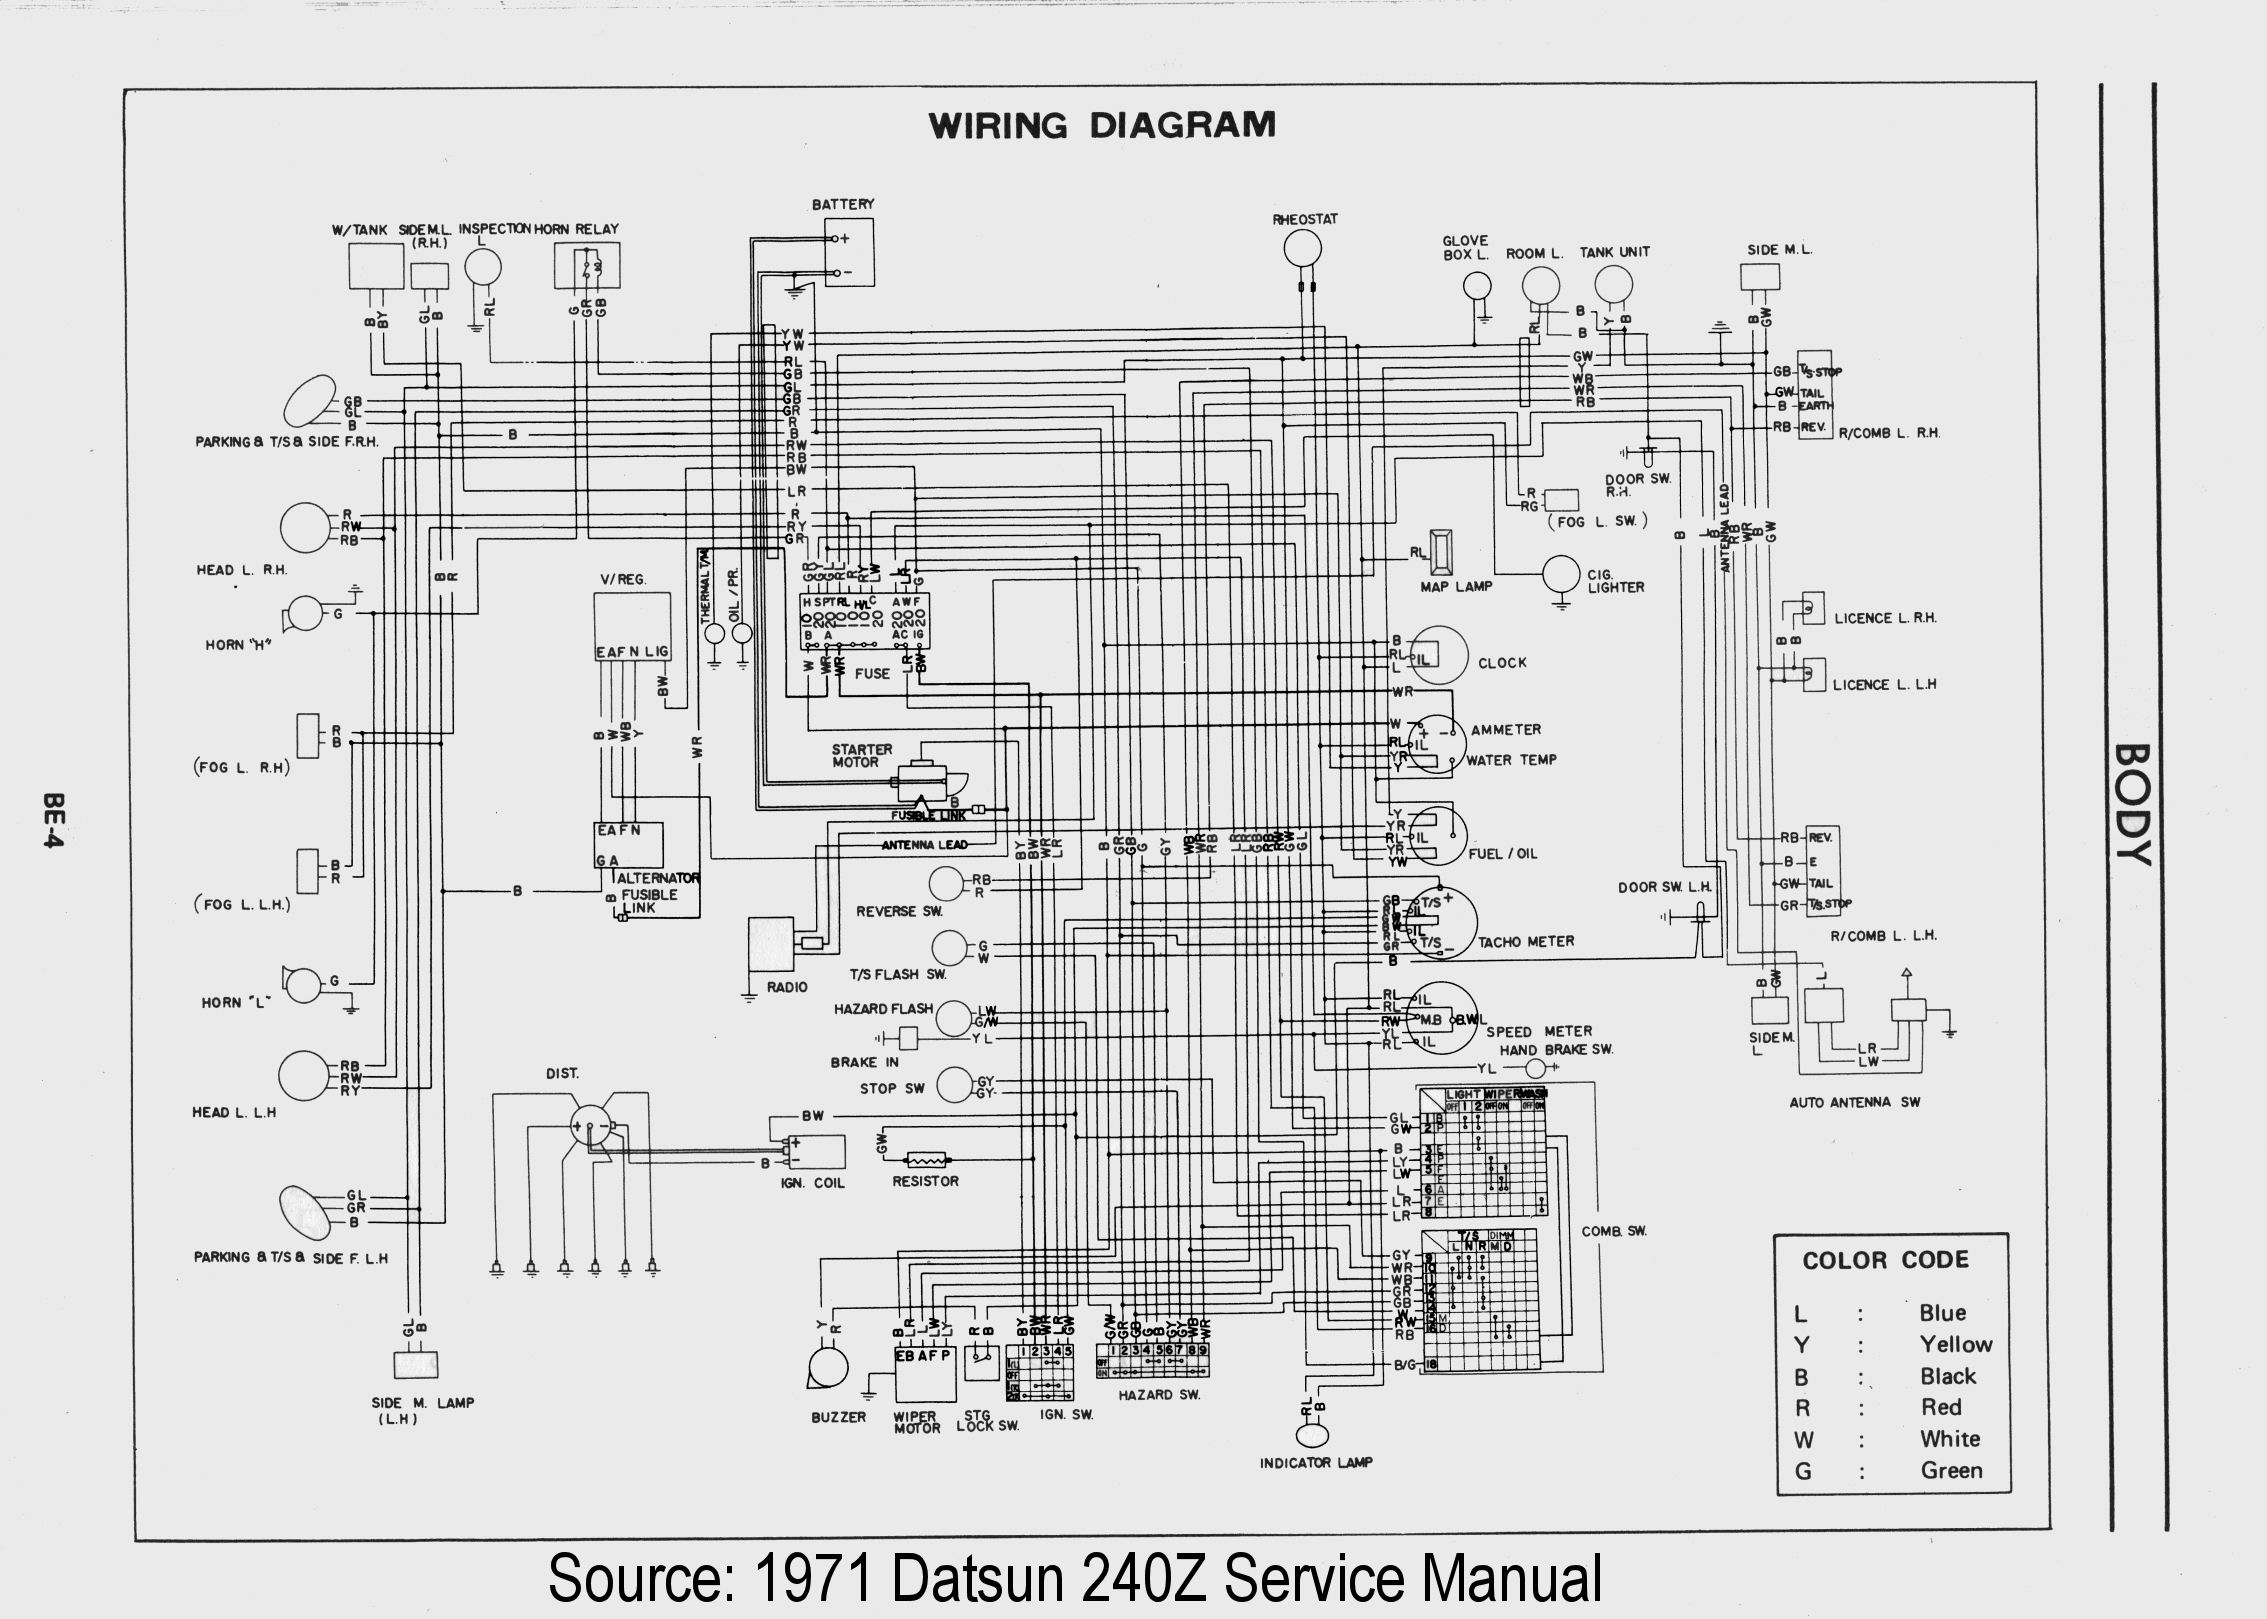 Wiring-Diagram-HiRes-2 Datsun Wiring Diagram on v8 swap, clip art, pickup tail, pick up custom, front lip, pu racing,